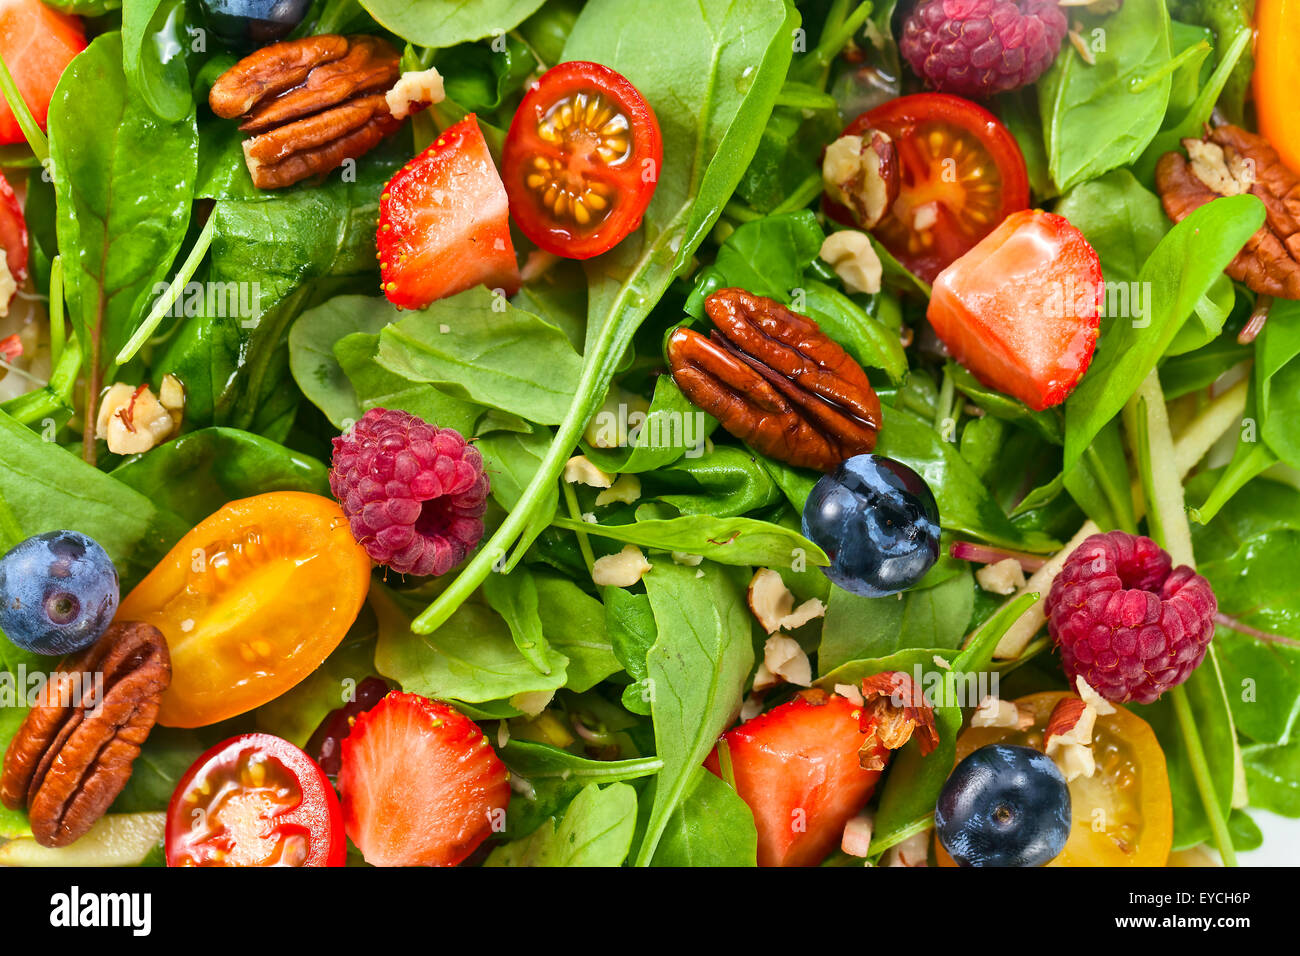 Green vegan salad with berries and nuts - Stock Image